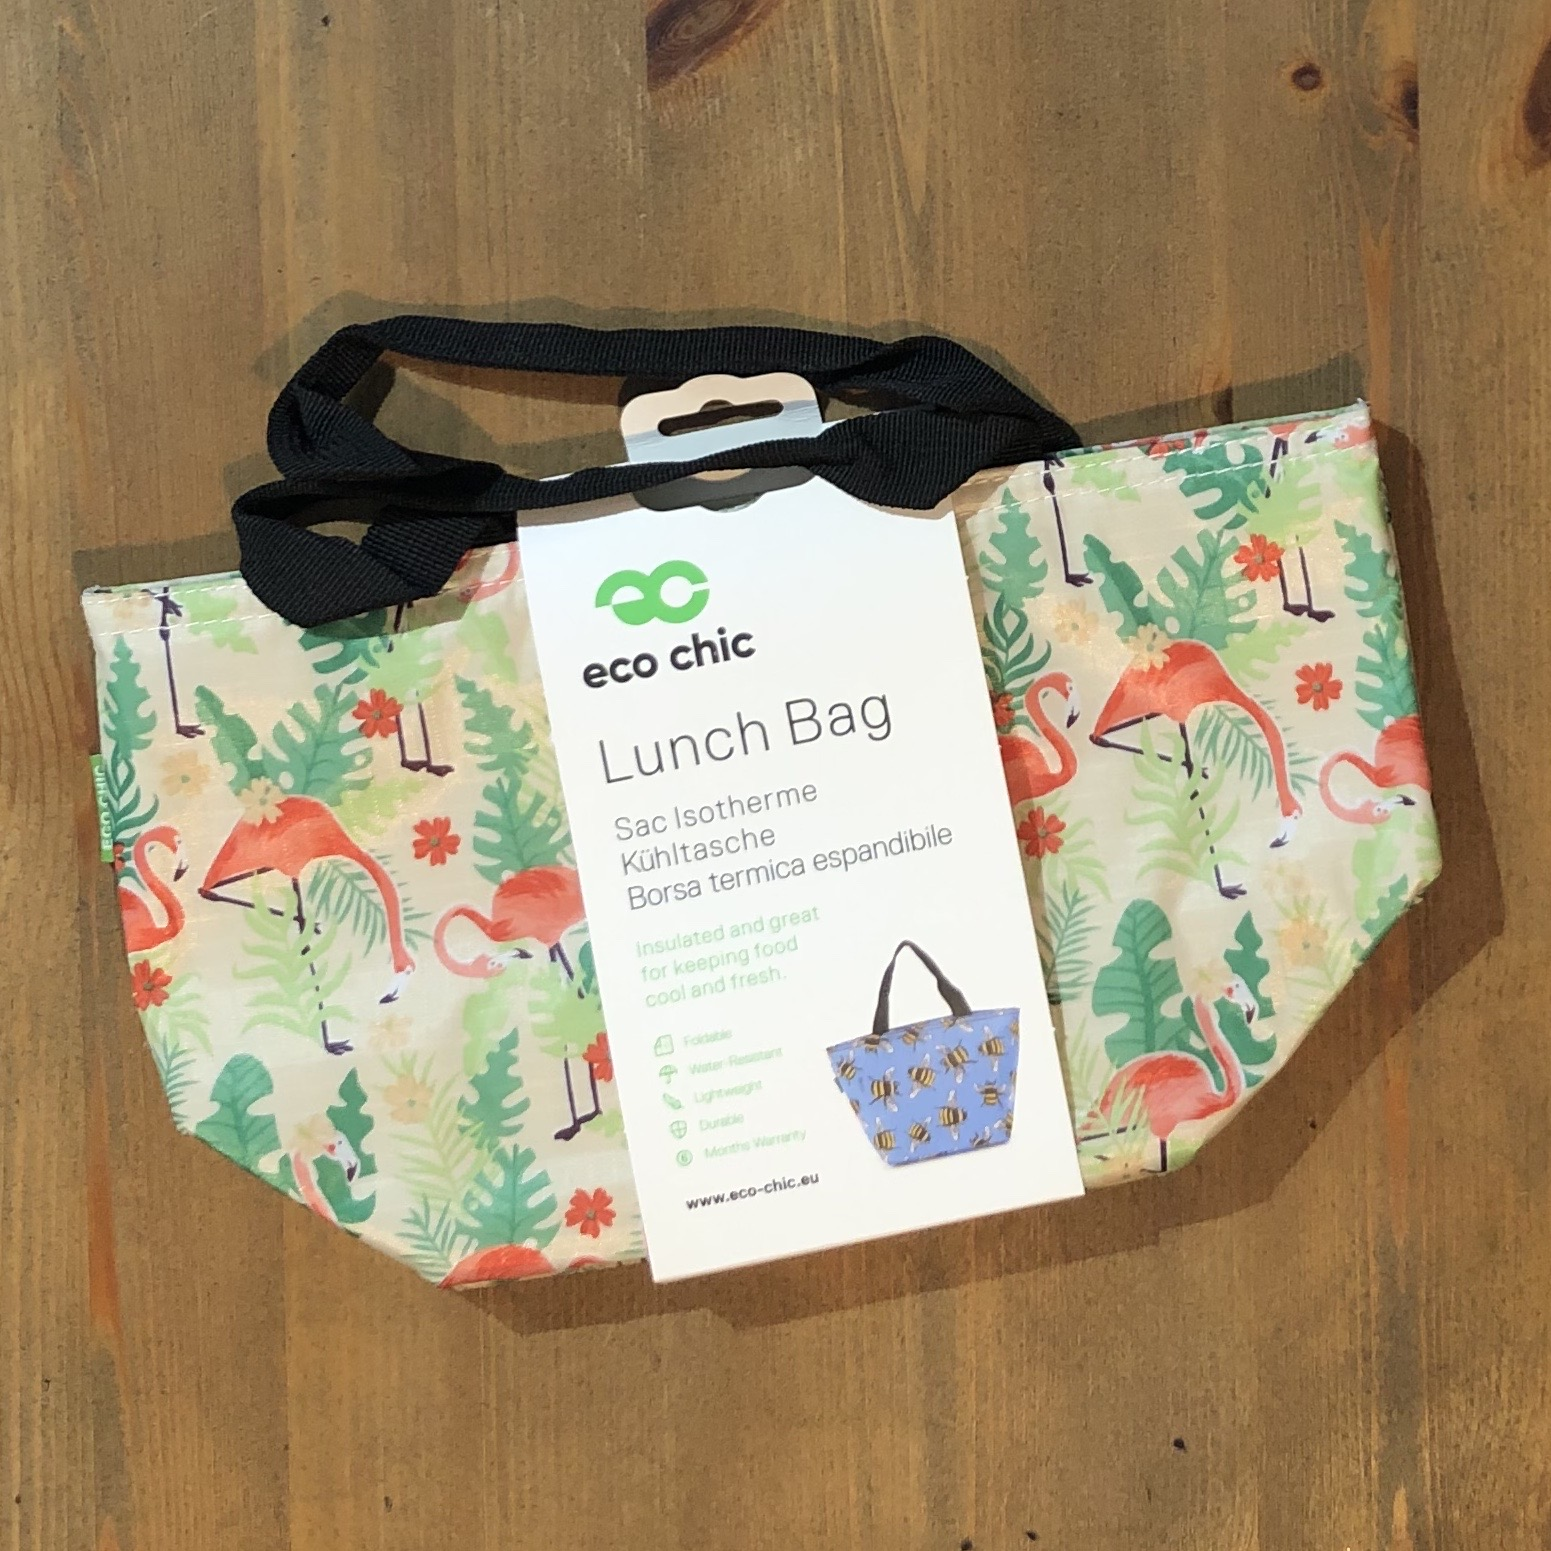 Lunchbags